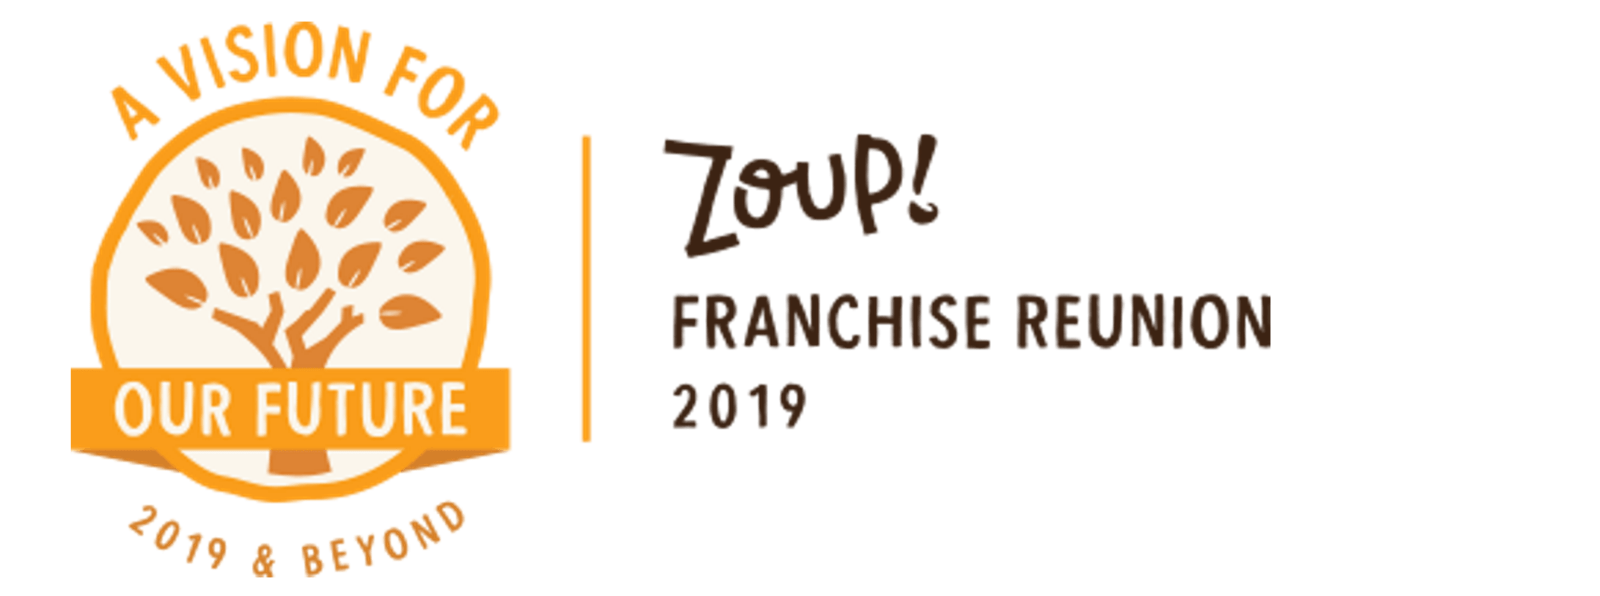 out of the box technology was in attendance for Zoup! Franchise reunion. It has been a match made in heaven - helping Zoup! franchises with bookkeeping and how to leverage it in QuickBooks.